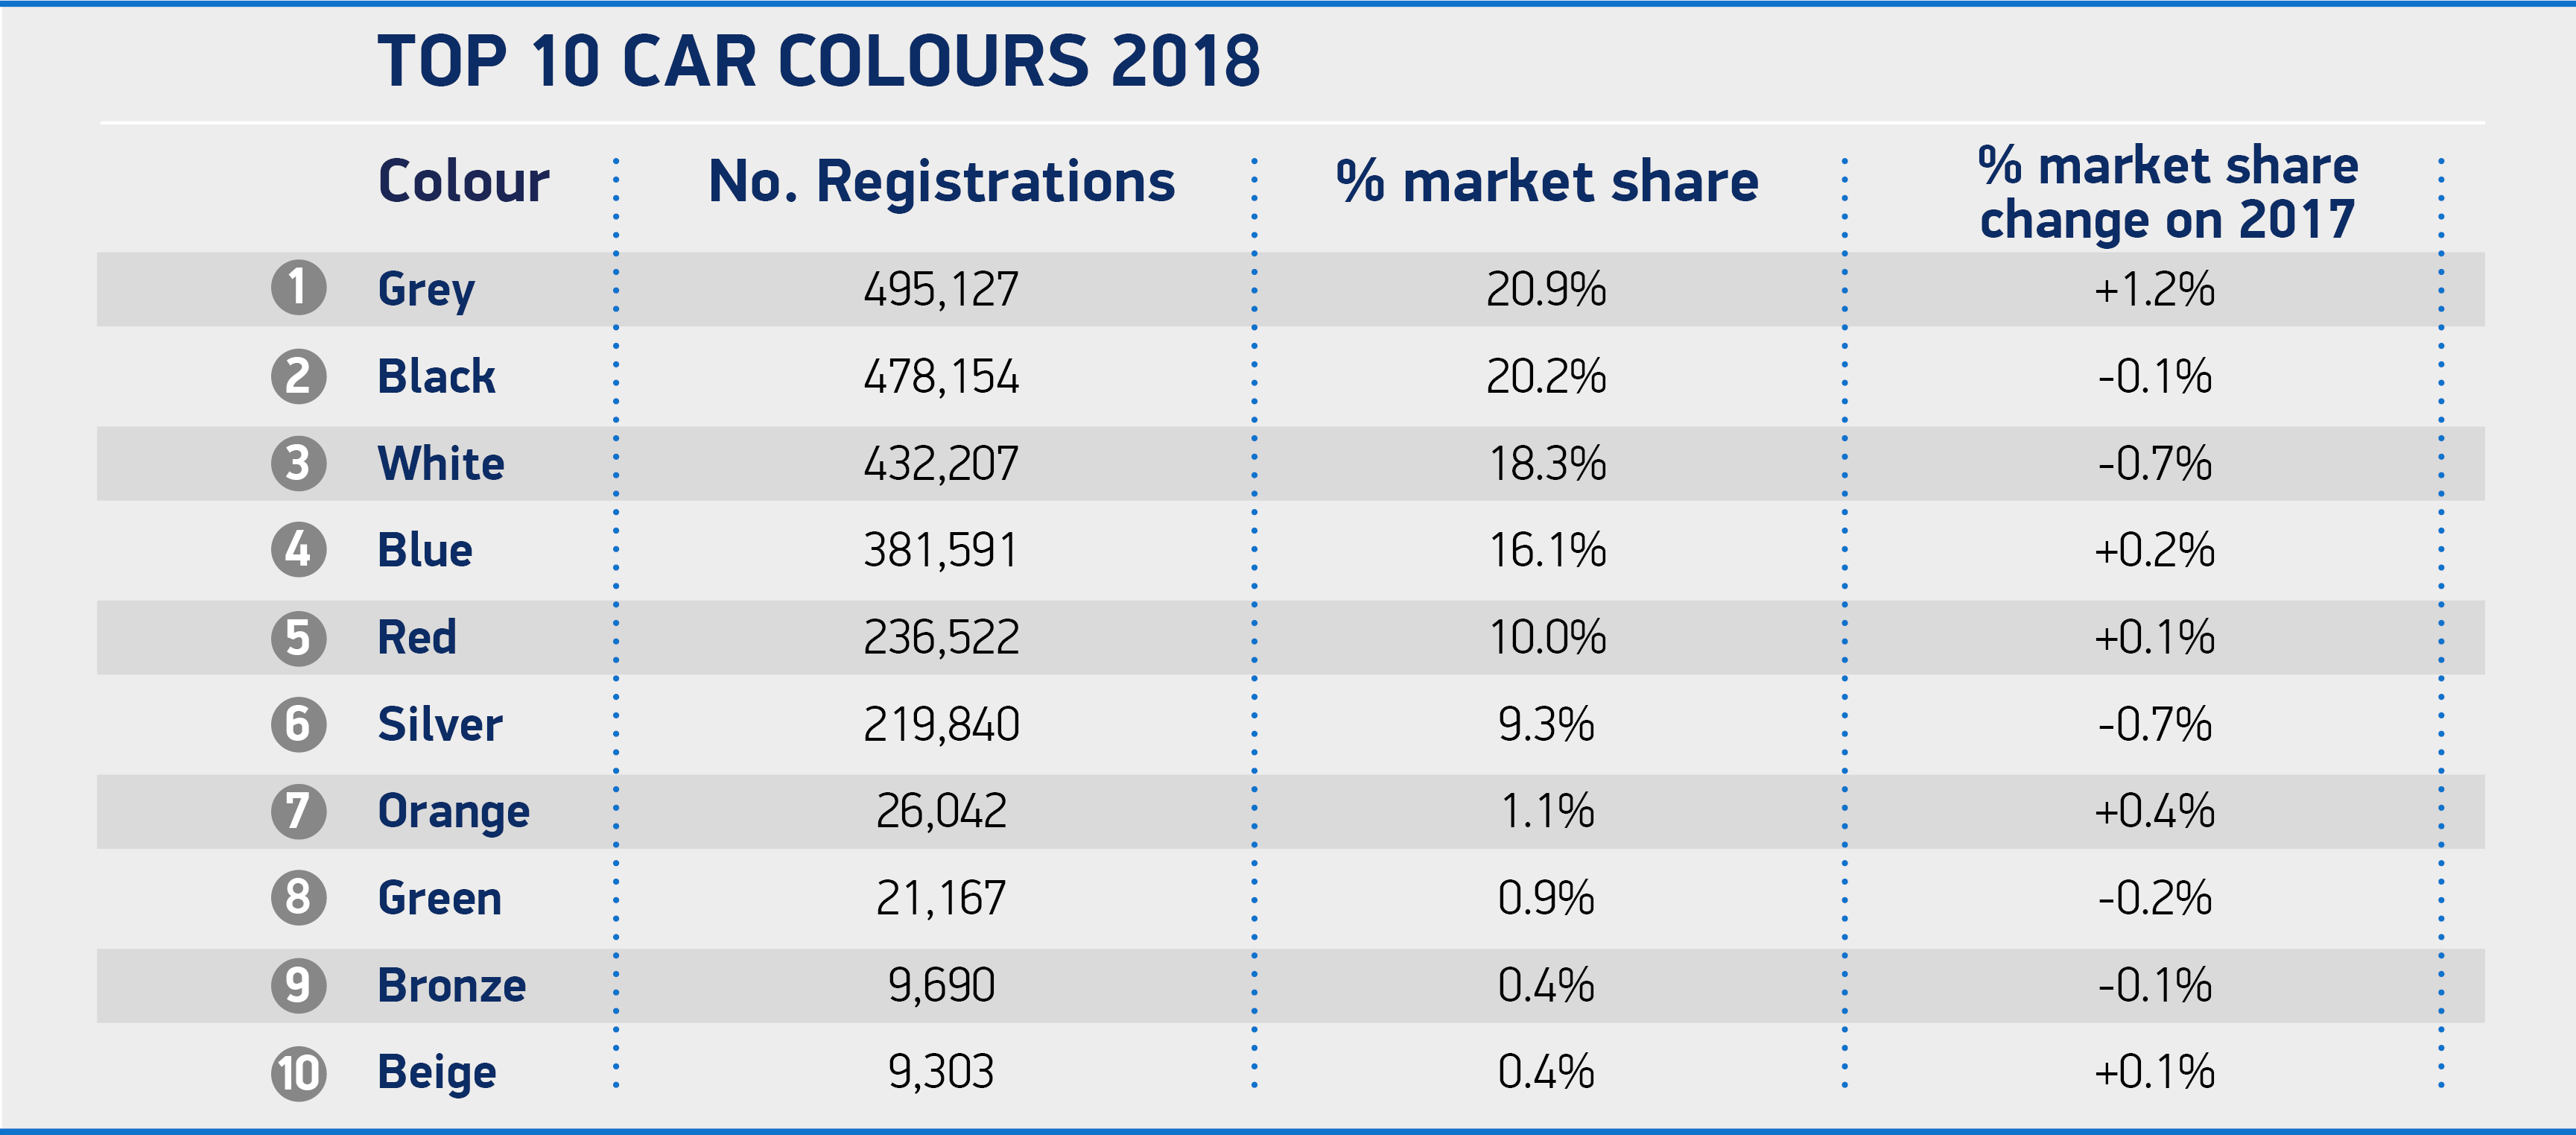 Grey matters most to UK car buyers as black loses number one